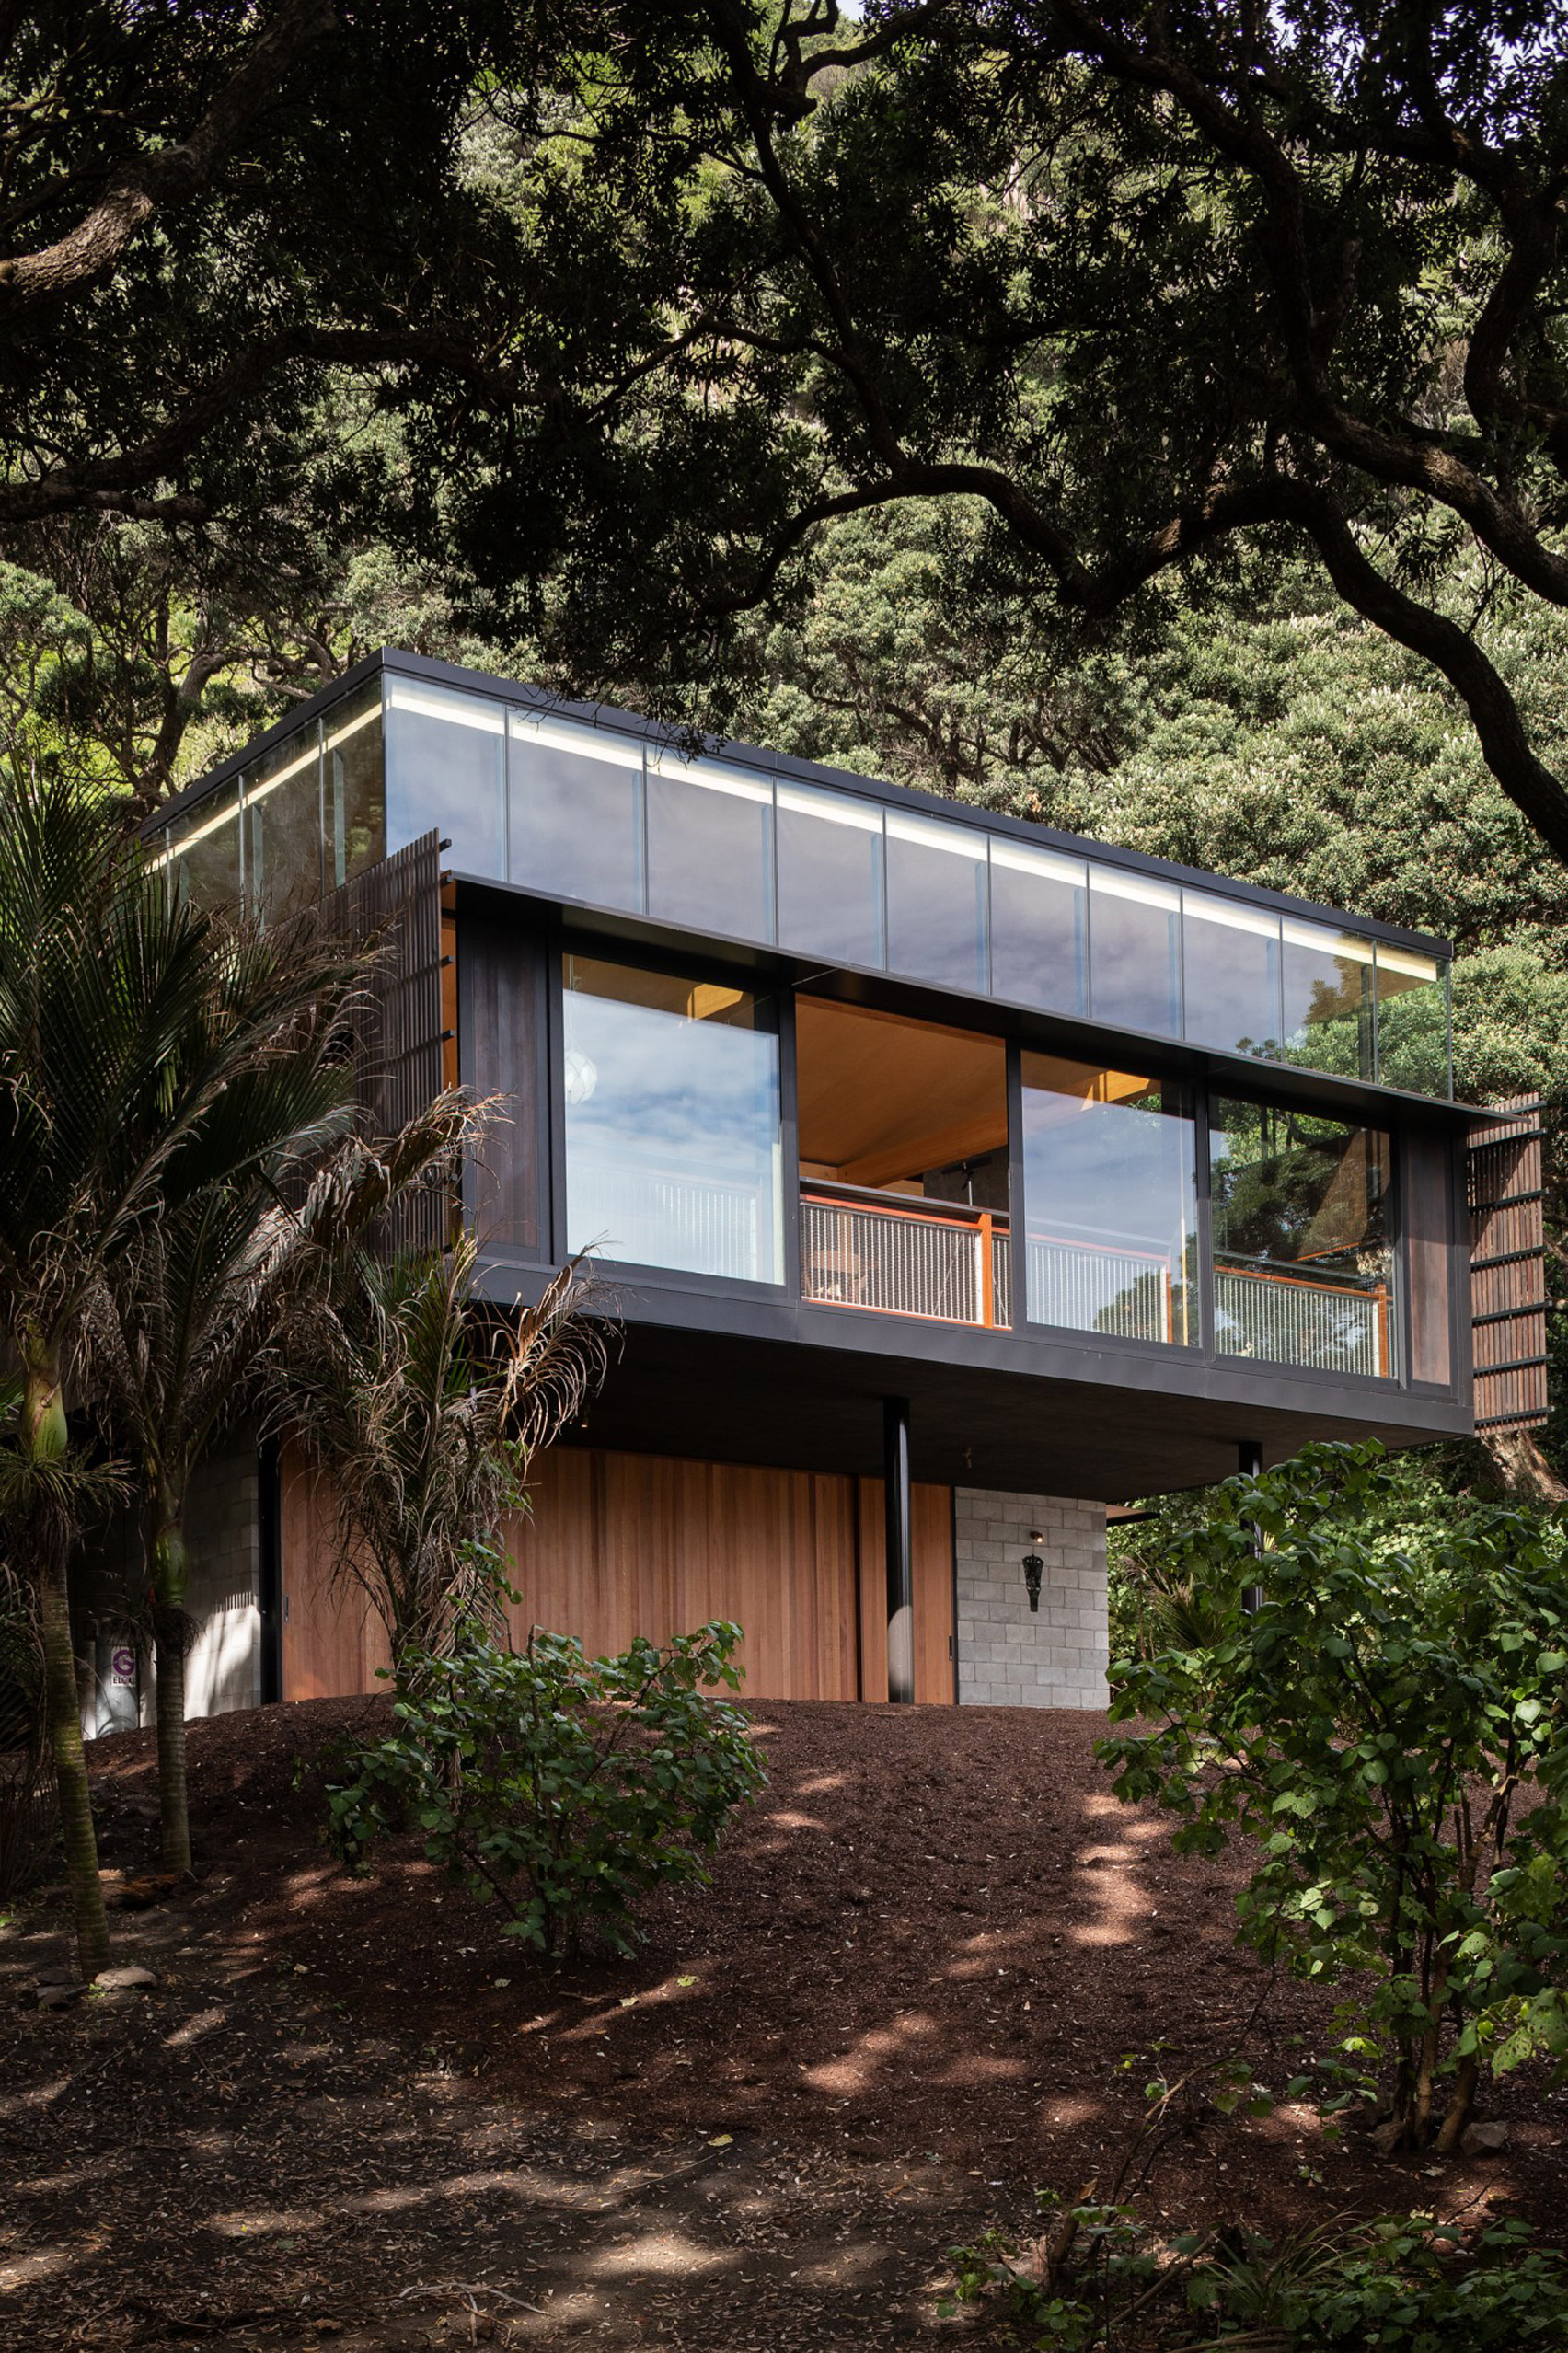 Giant boxy home high in the trees with sea views